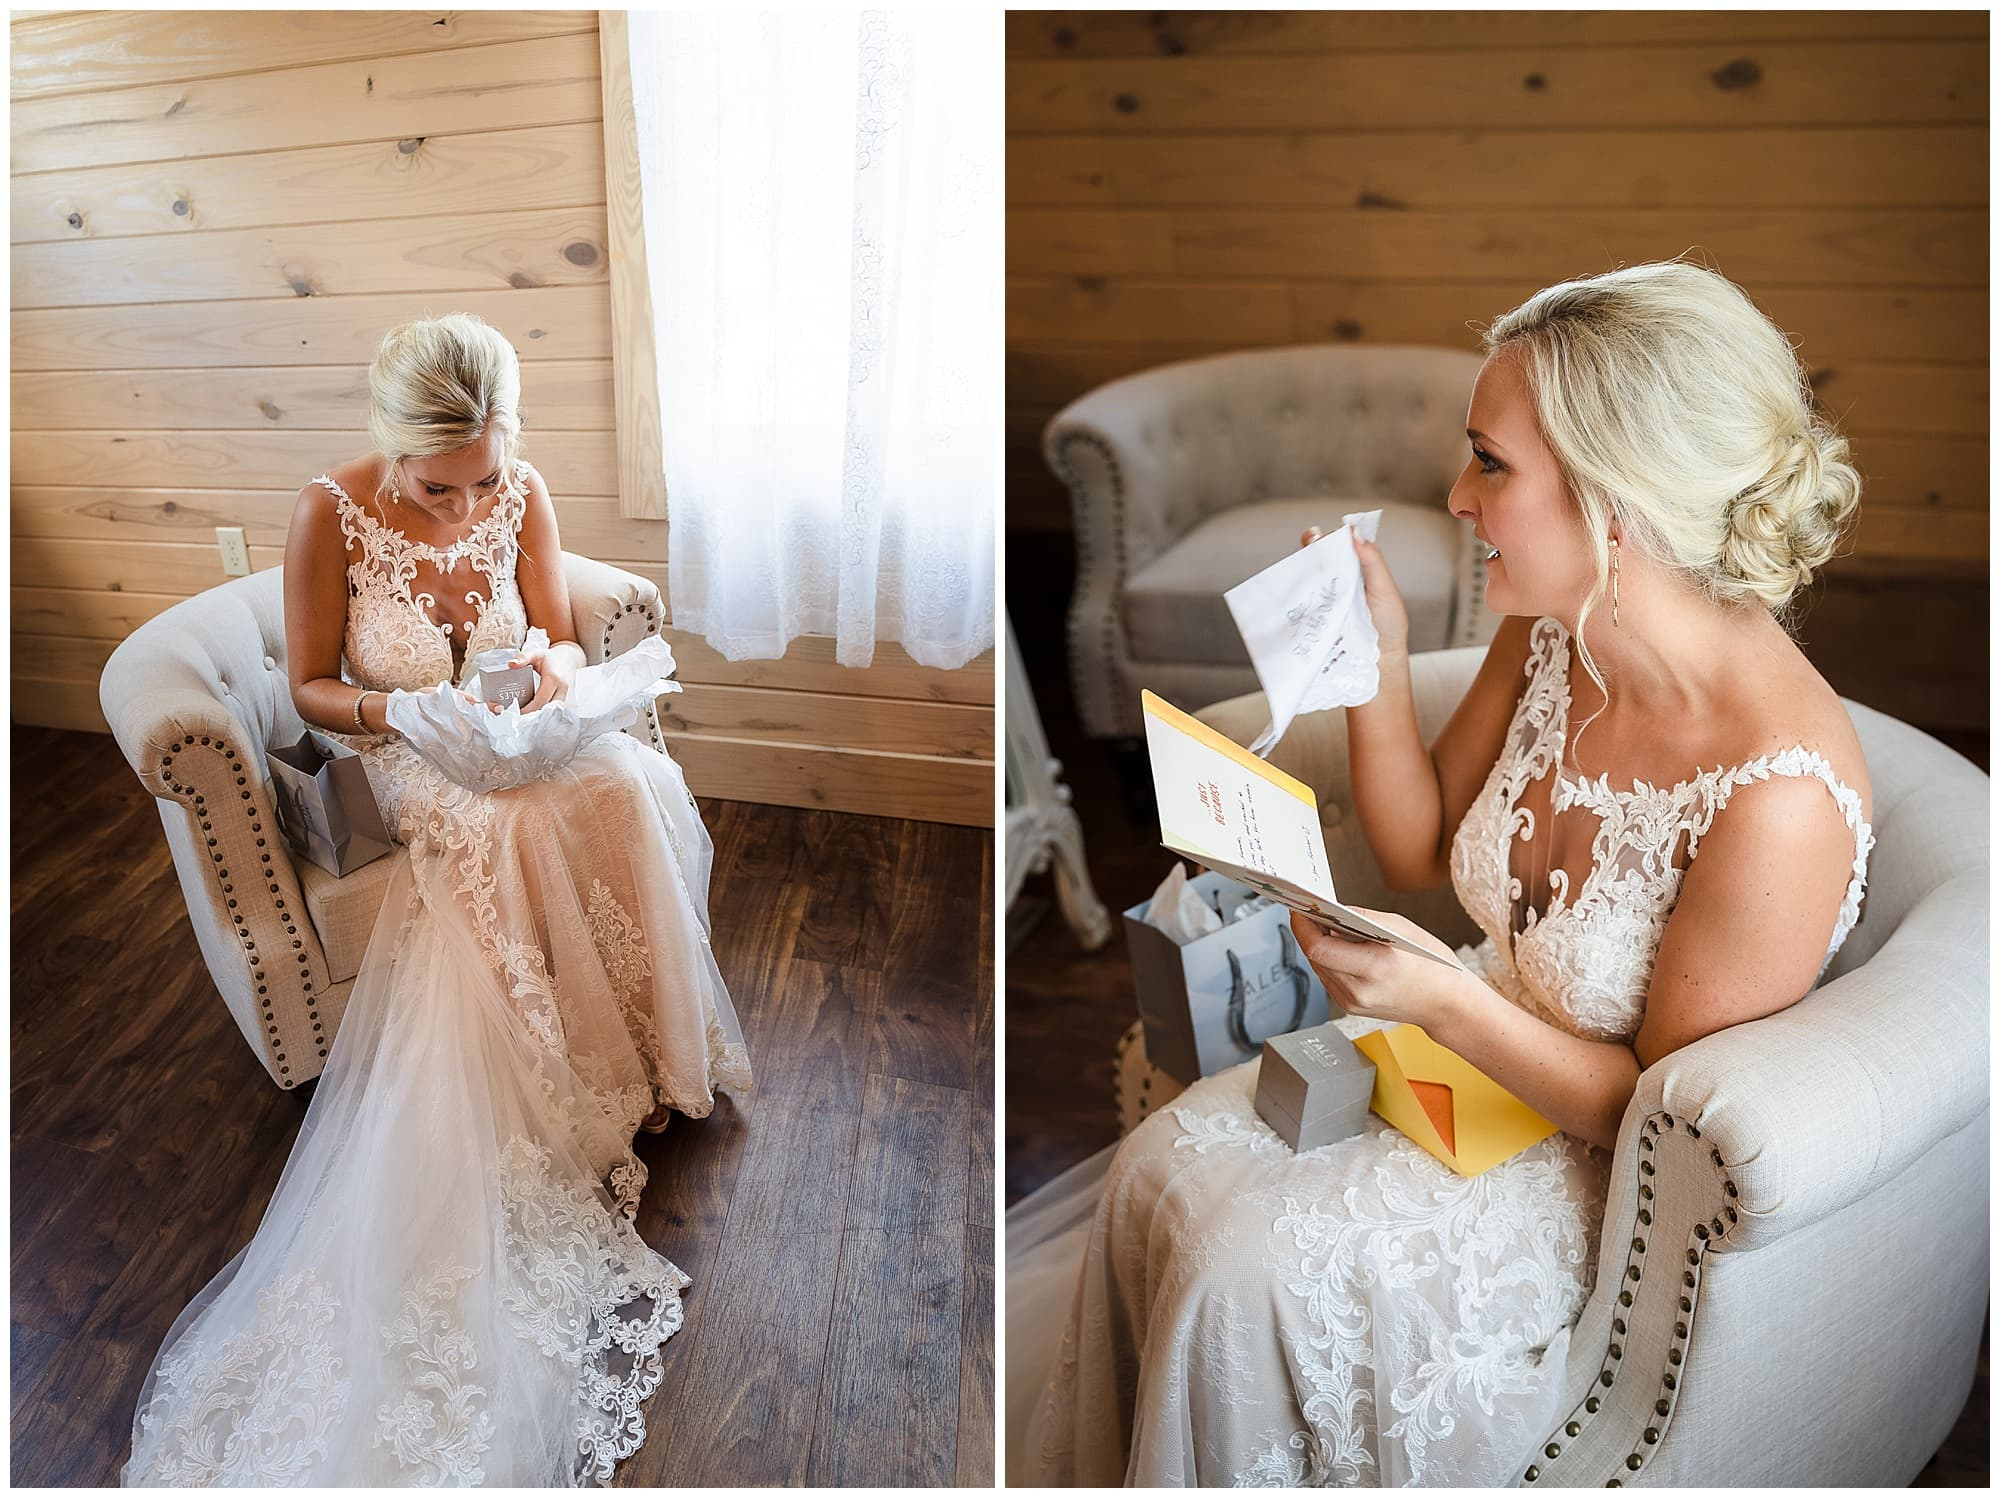 The Sadie Jane Wedding Venue bride opening gift and crying